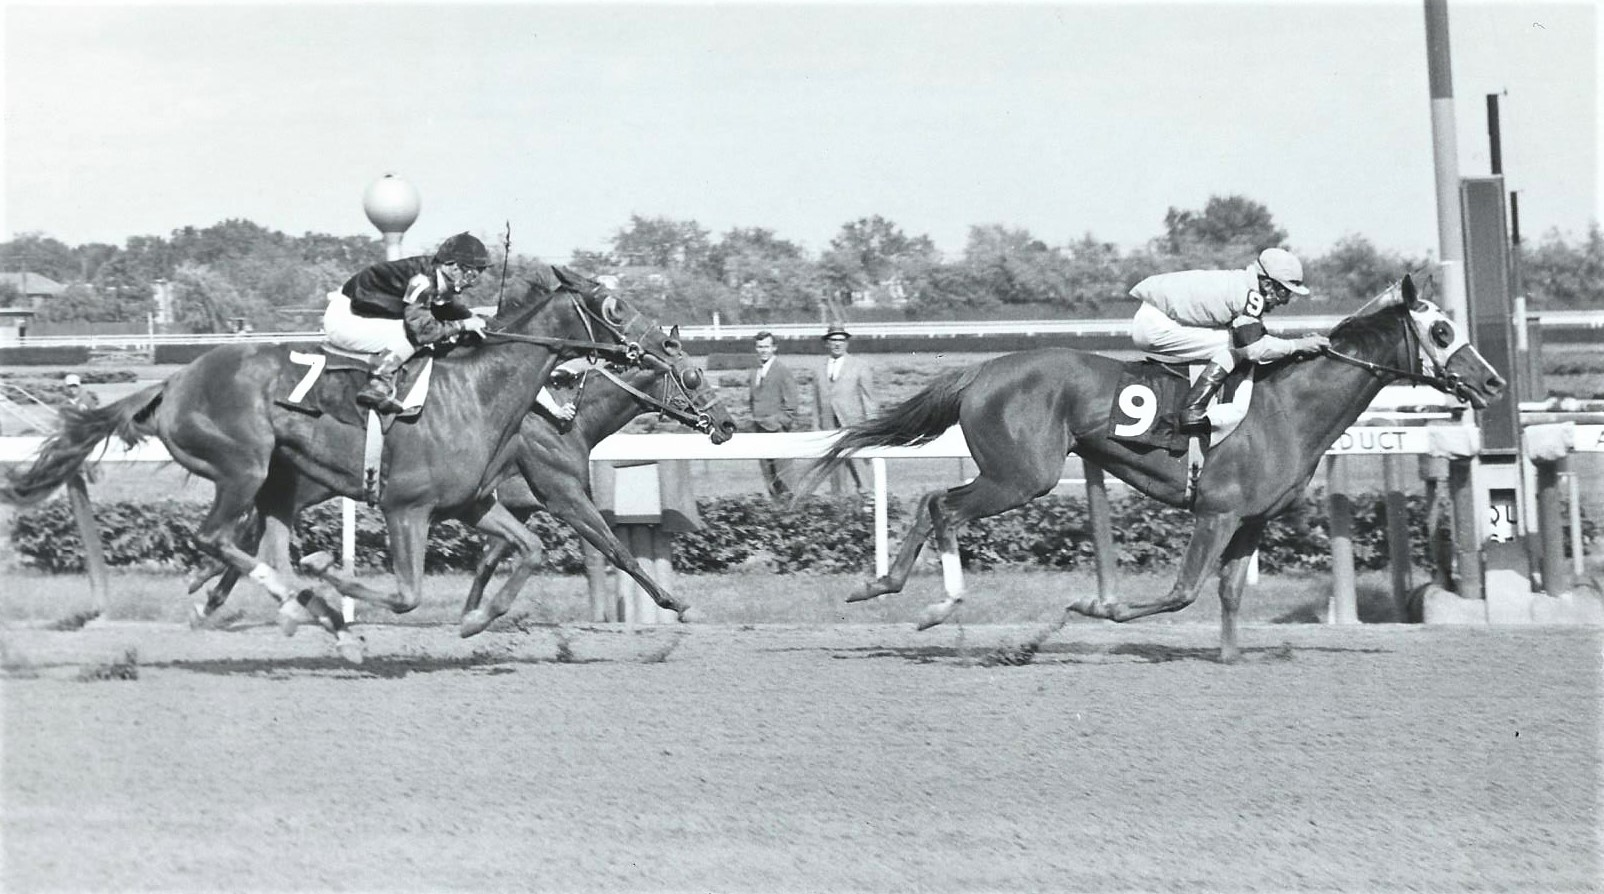 A serious racehorse: Lady Pitt wins the 1966 Mother Goose over Marking Time and Prides Profile